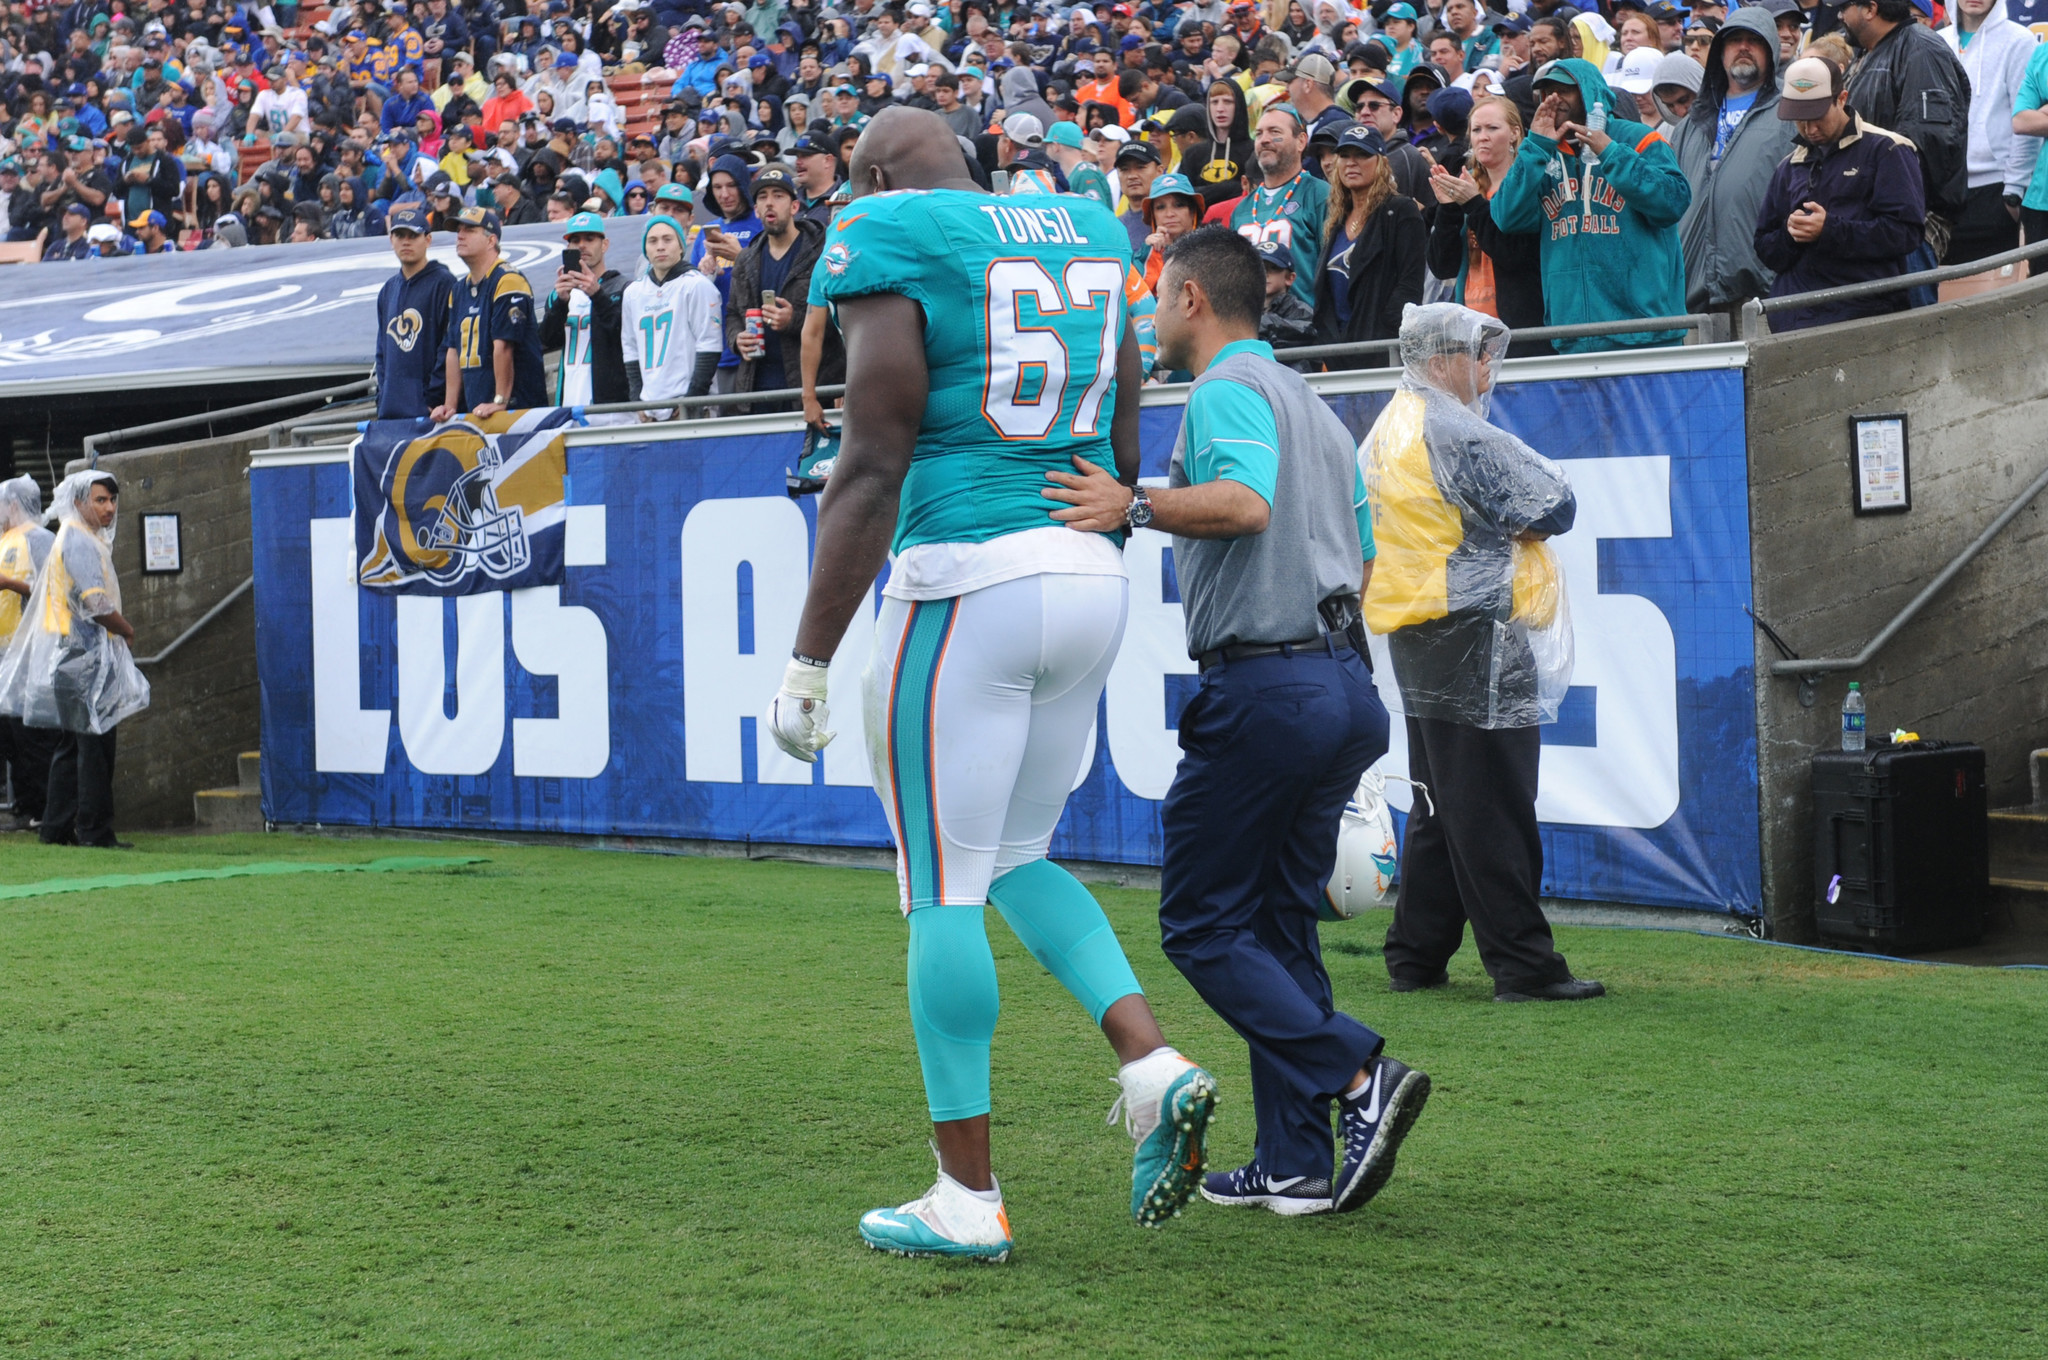 Dolphins rookie Laremy Tunsil shoulder inactive OL will have